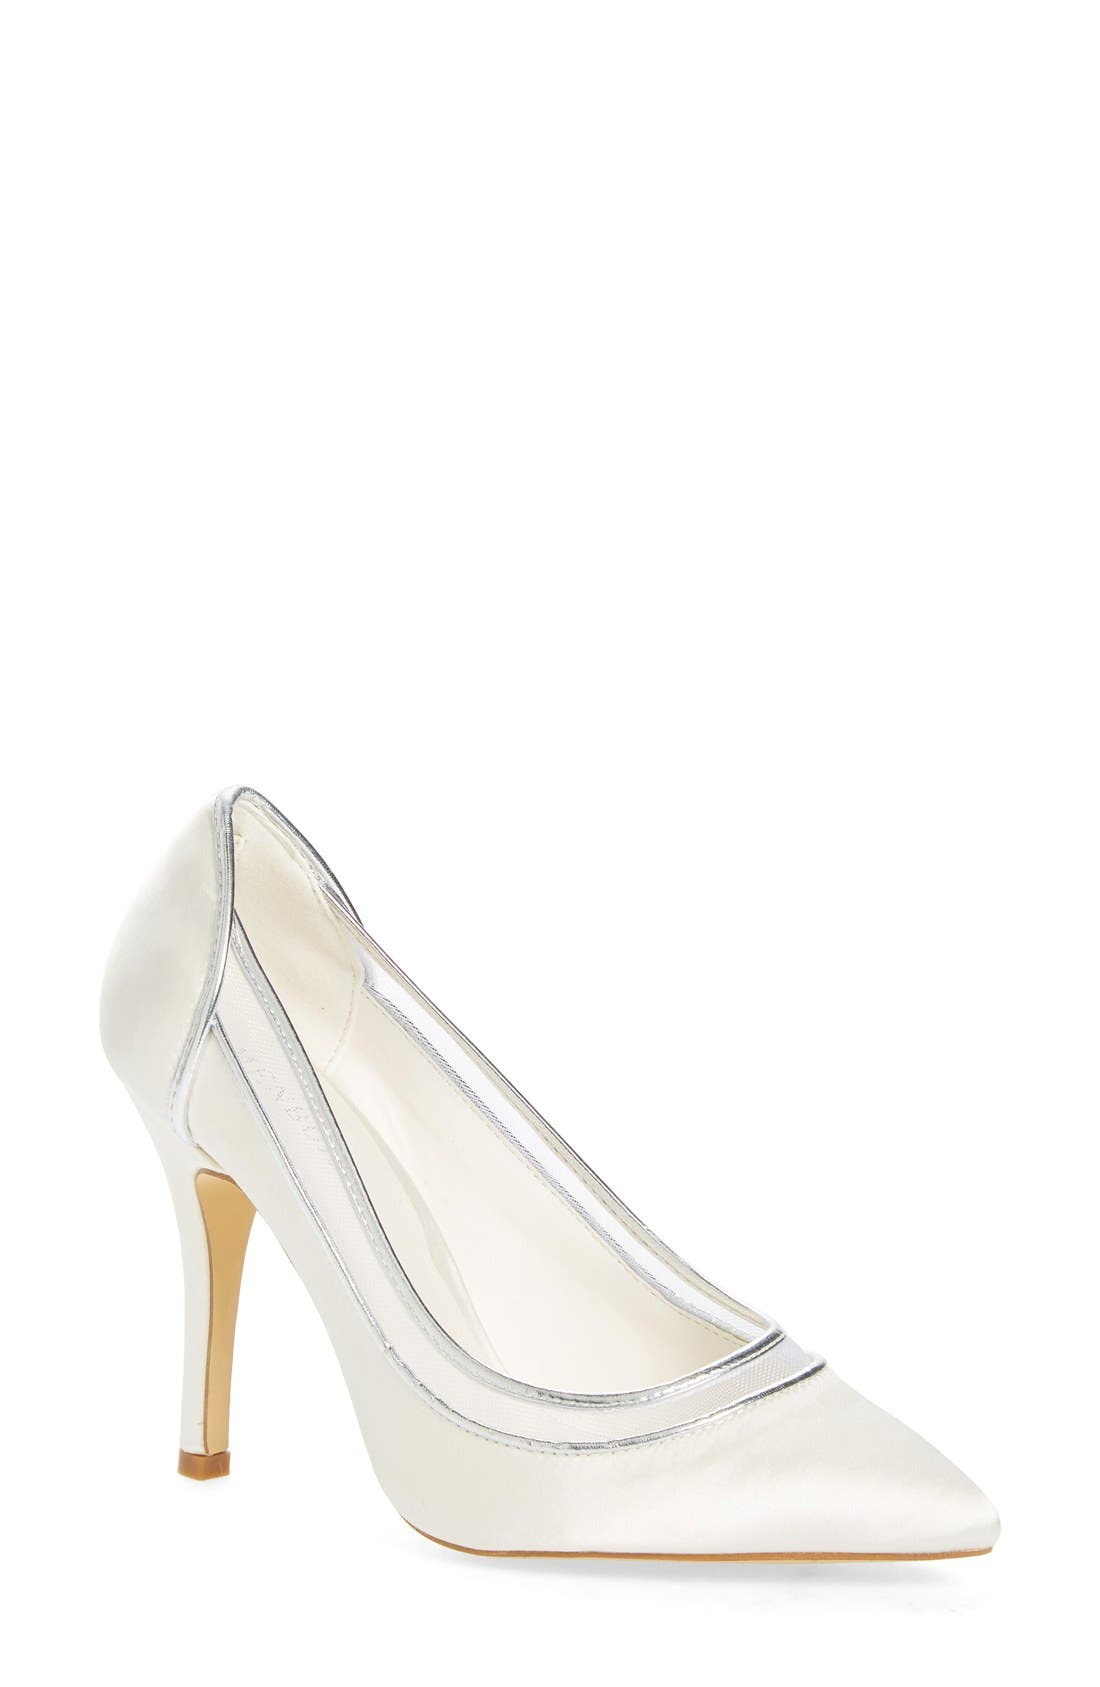 MENBUR Berenice Pointy Toe Pump